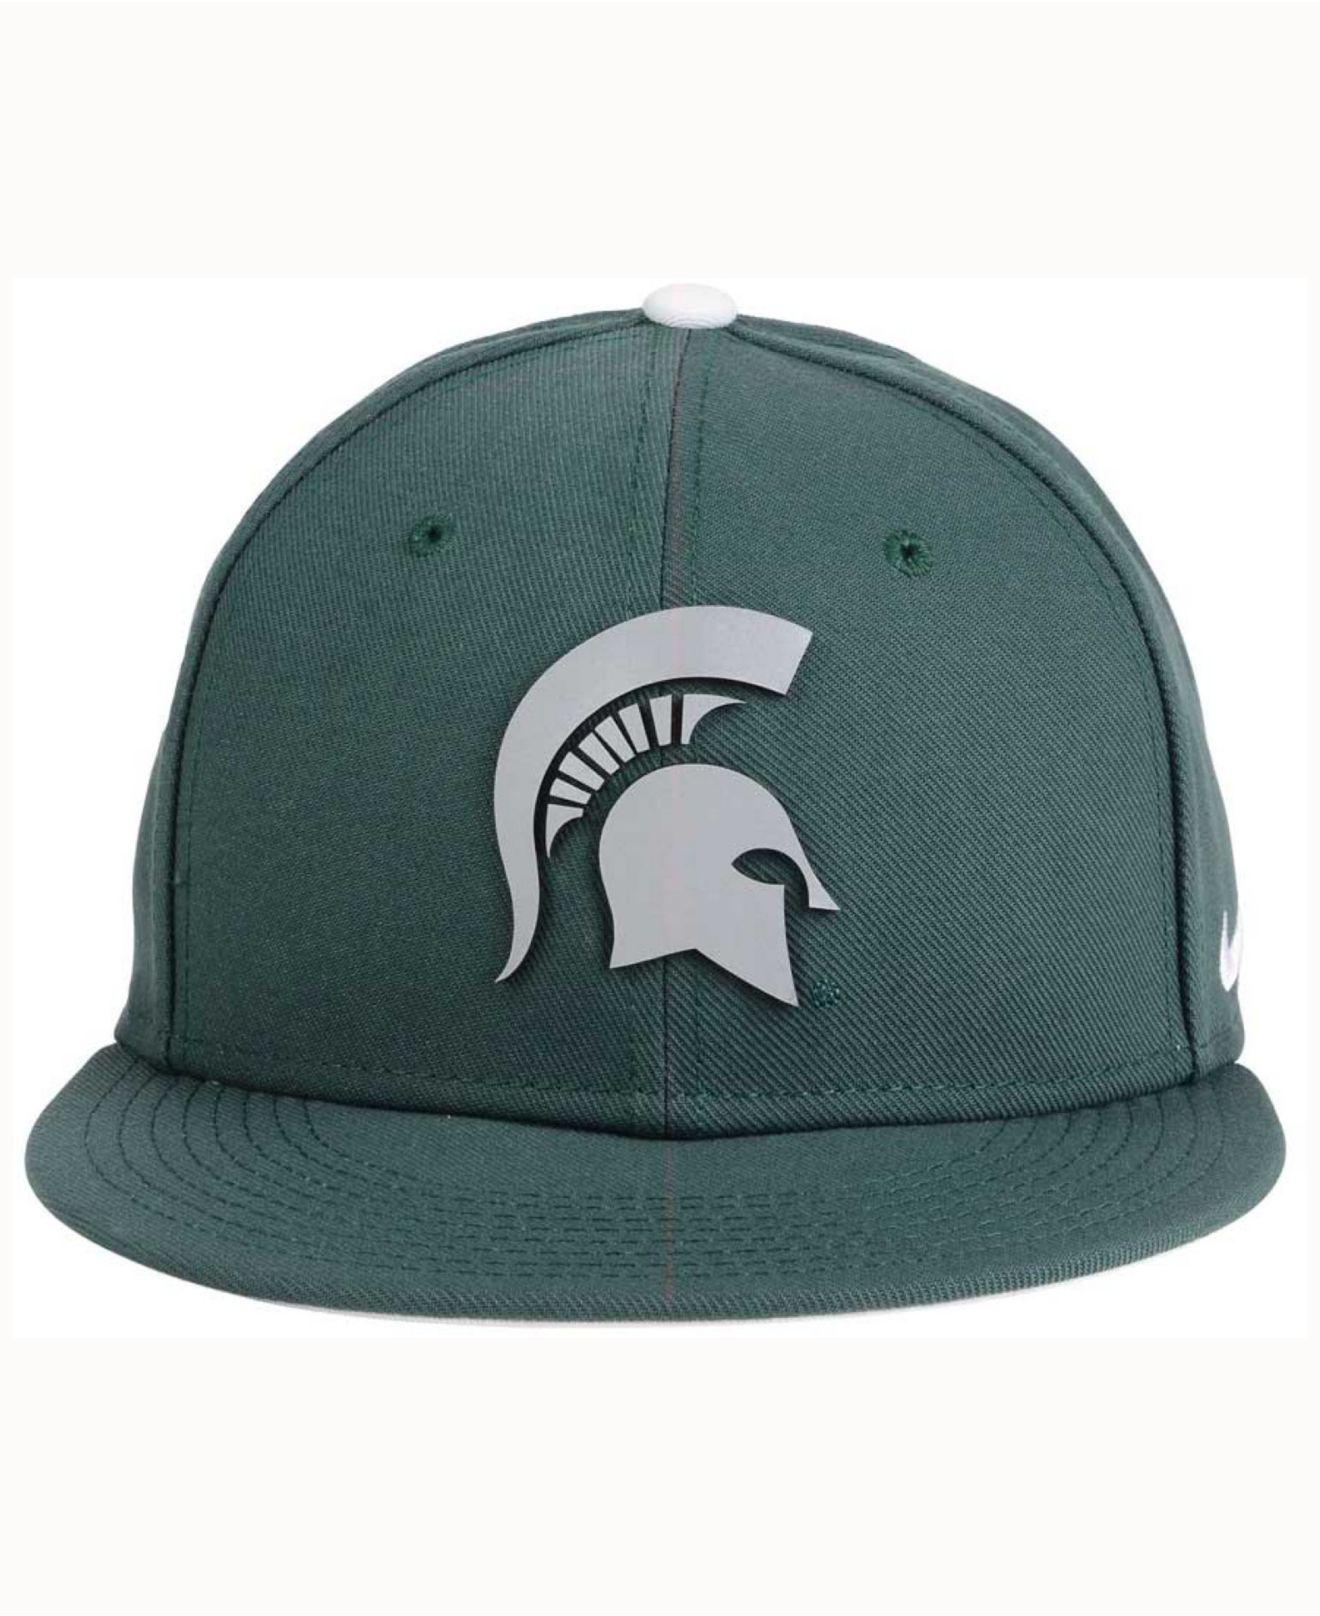 uk availability 3d889 1be9b ... usa lyst nike michigan state spartans true reflective snapback cap in  c7464 ea43a